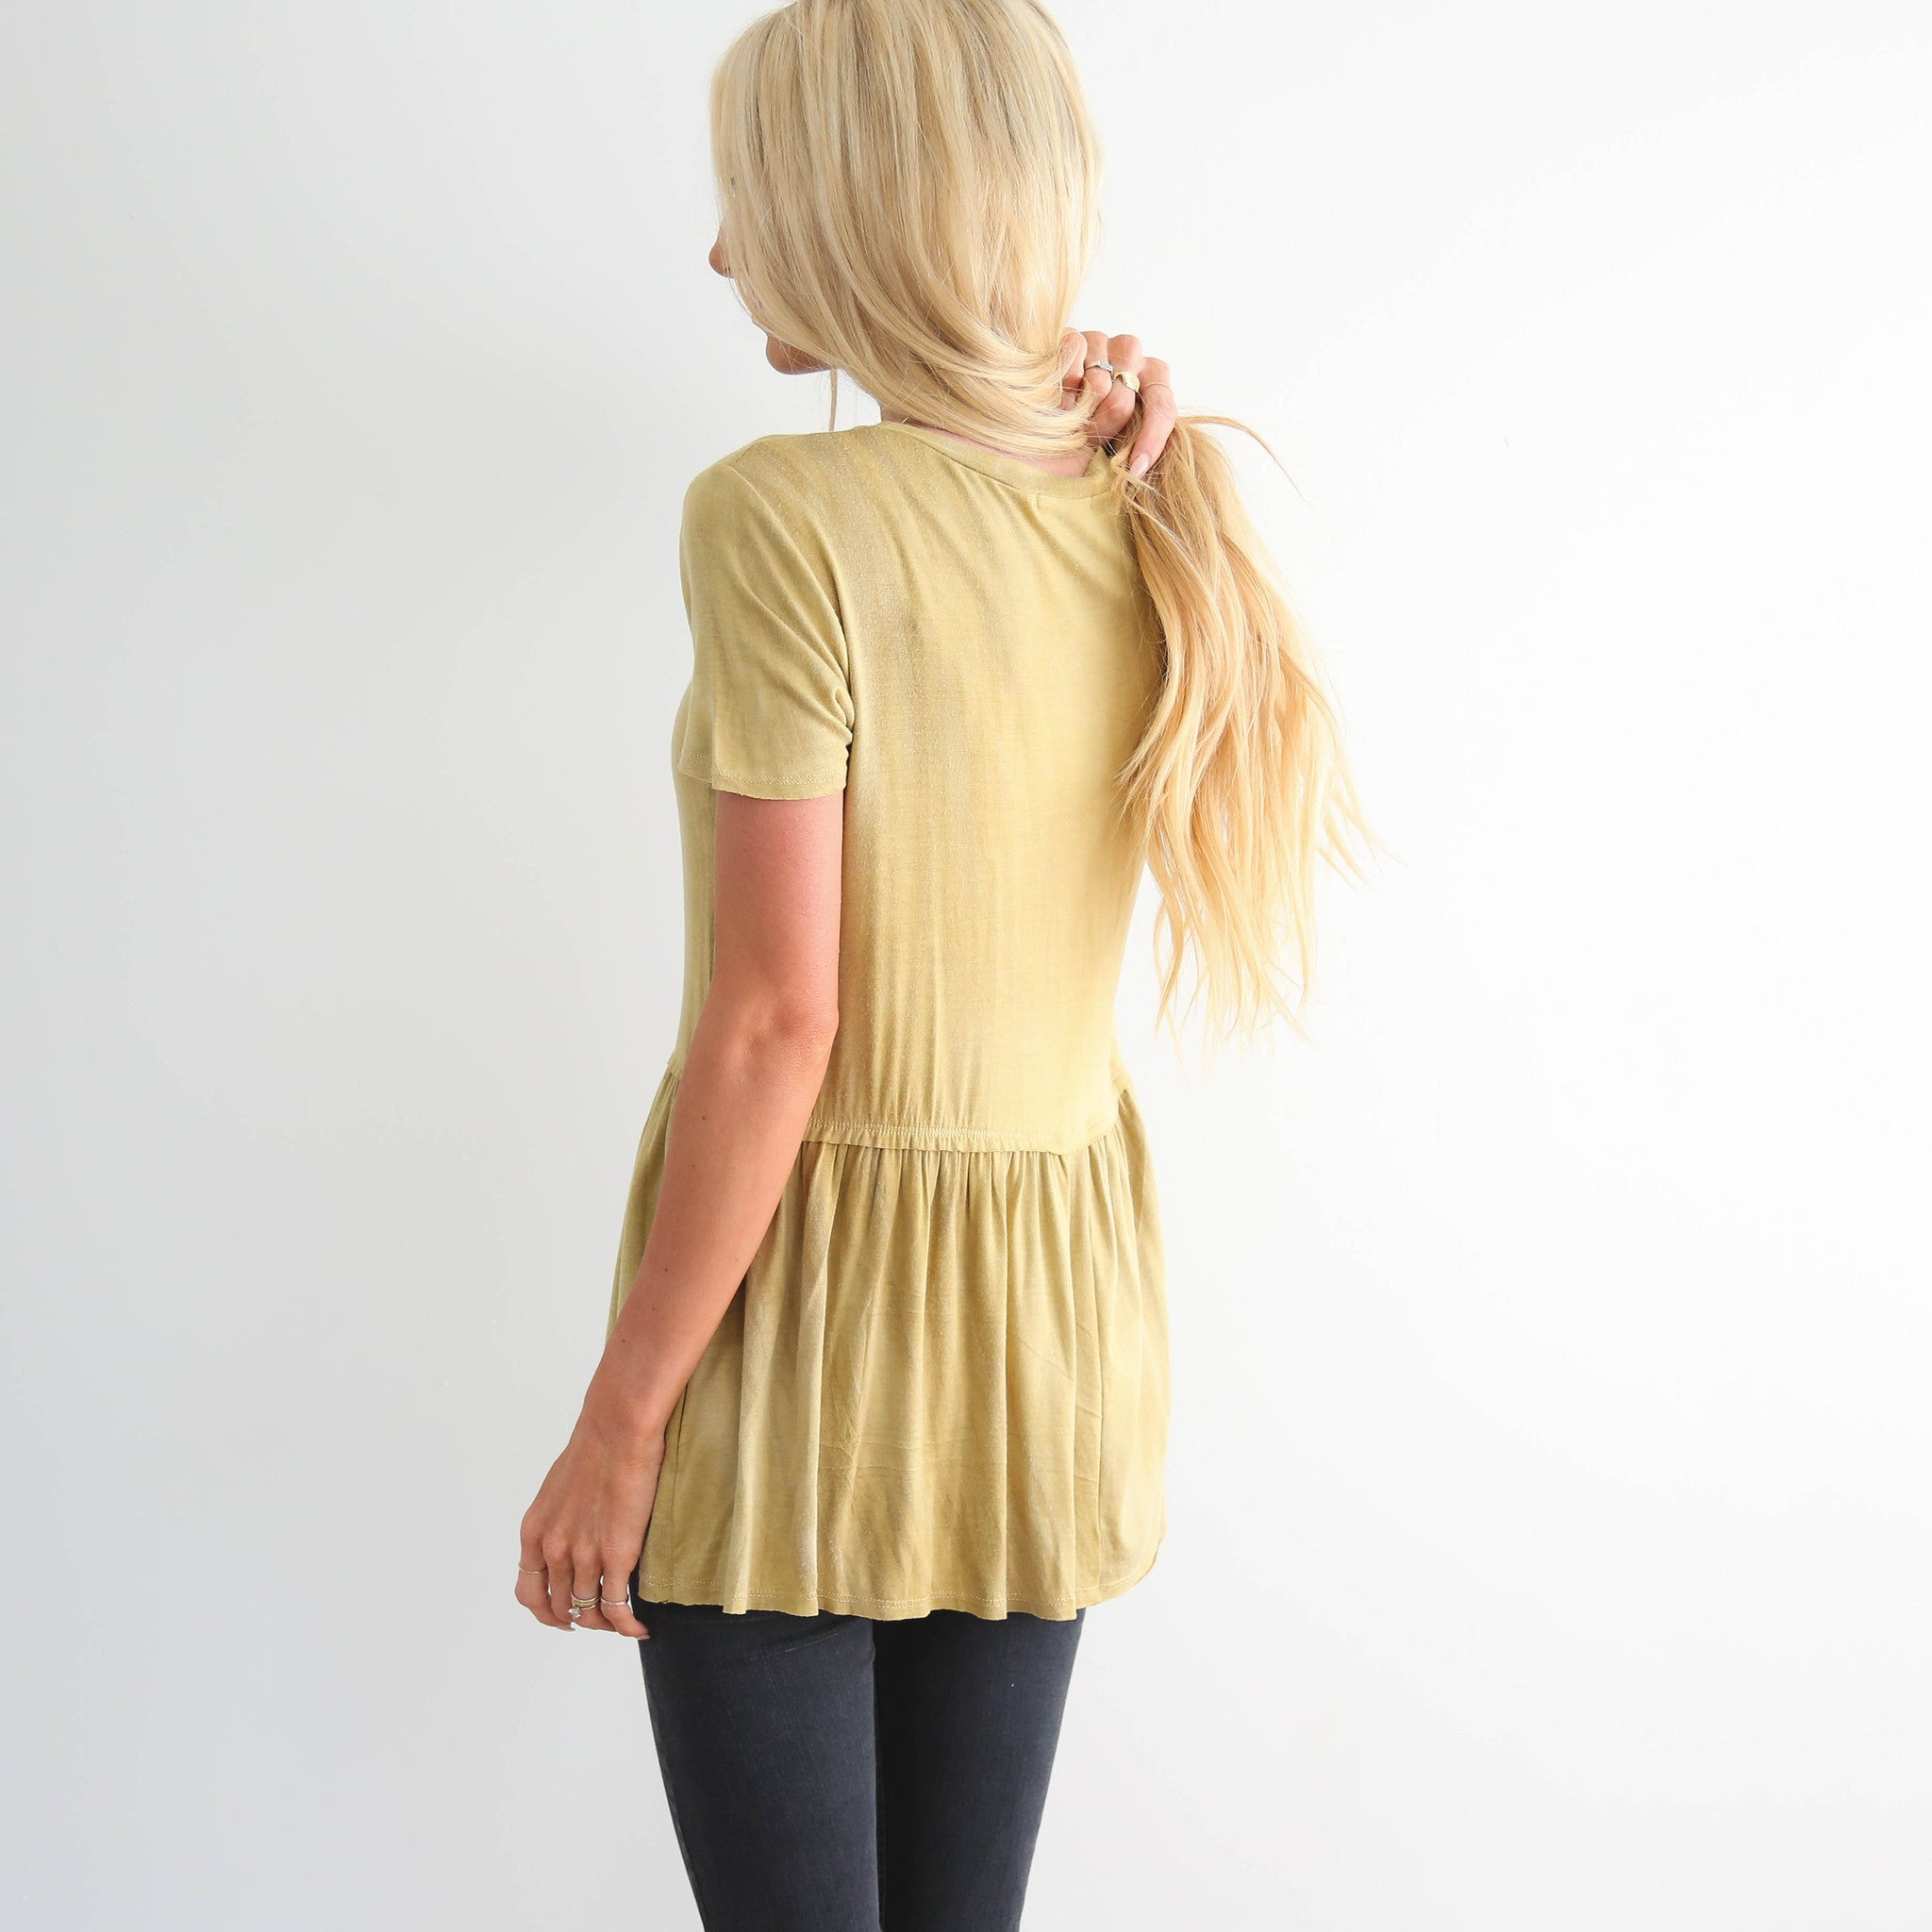 Washed Mustard Yellow Peplum